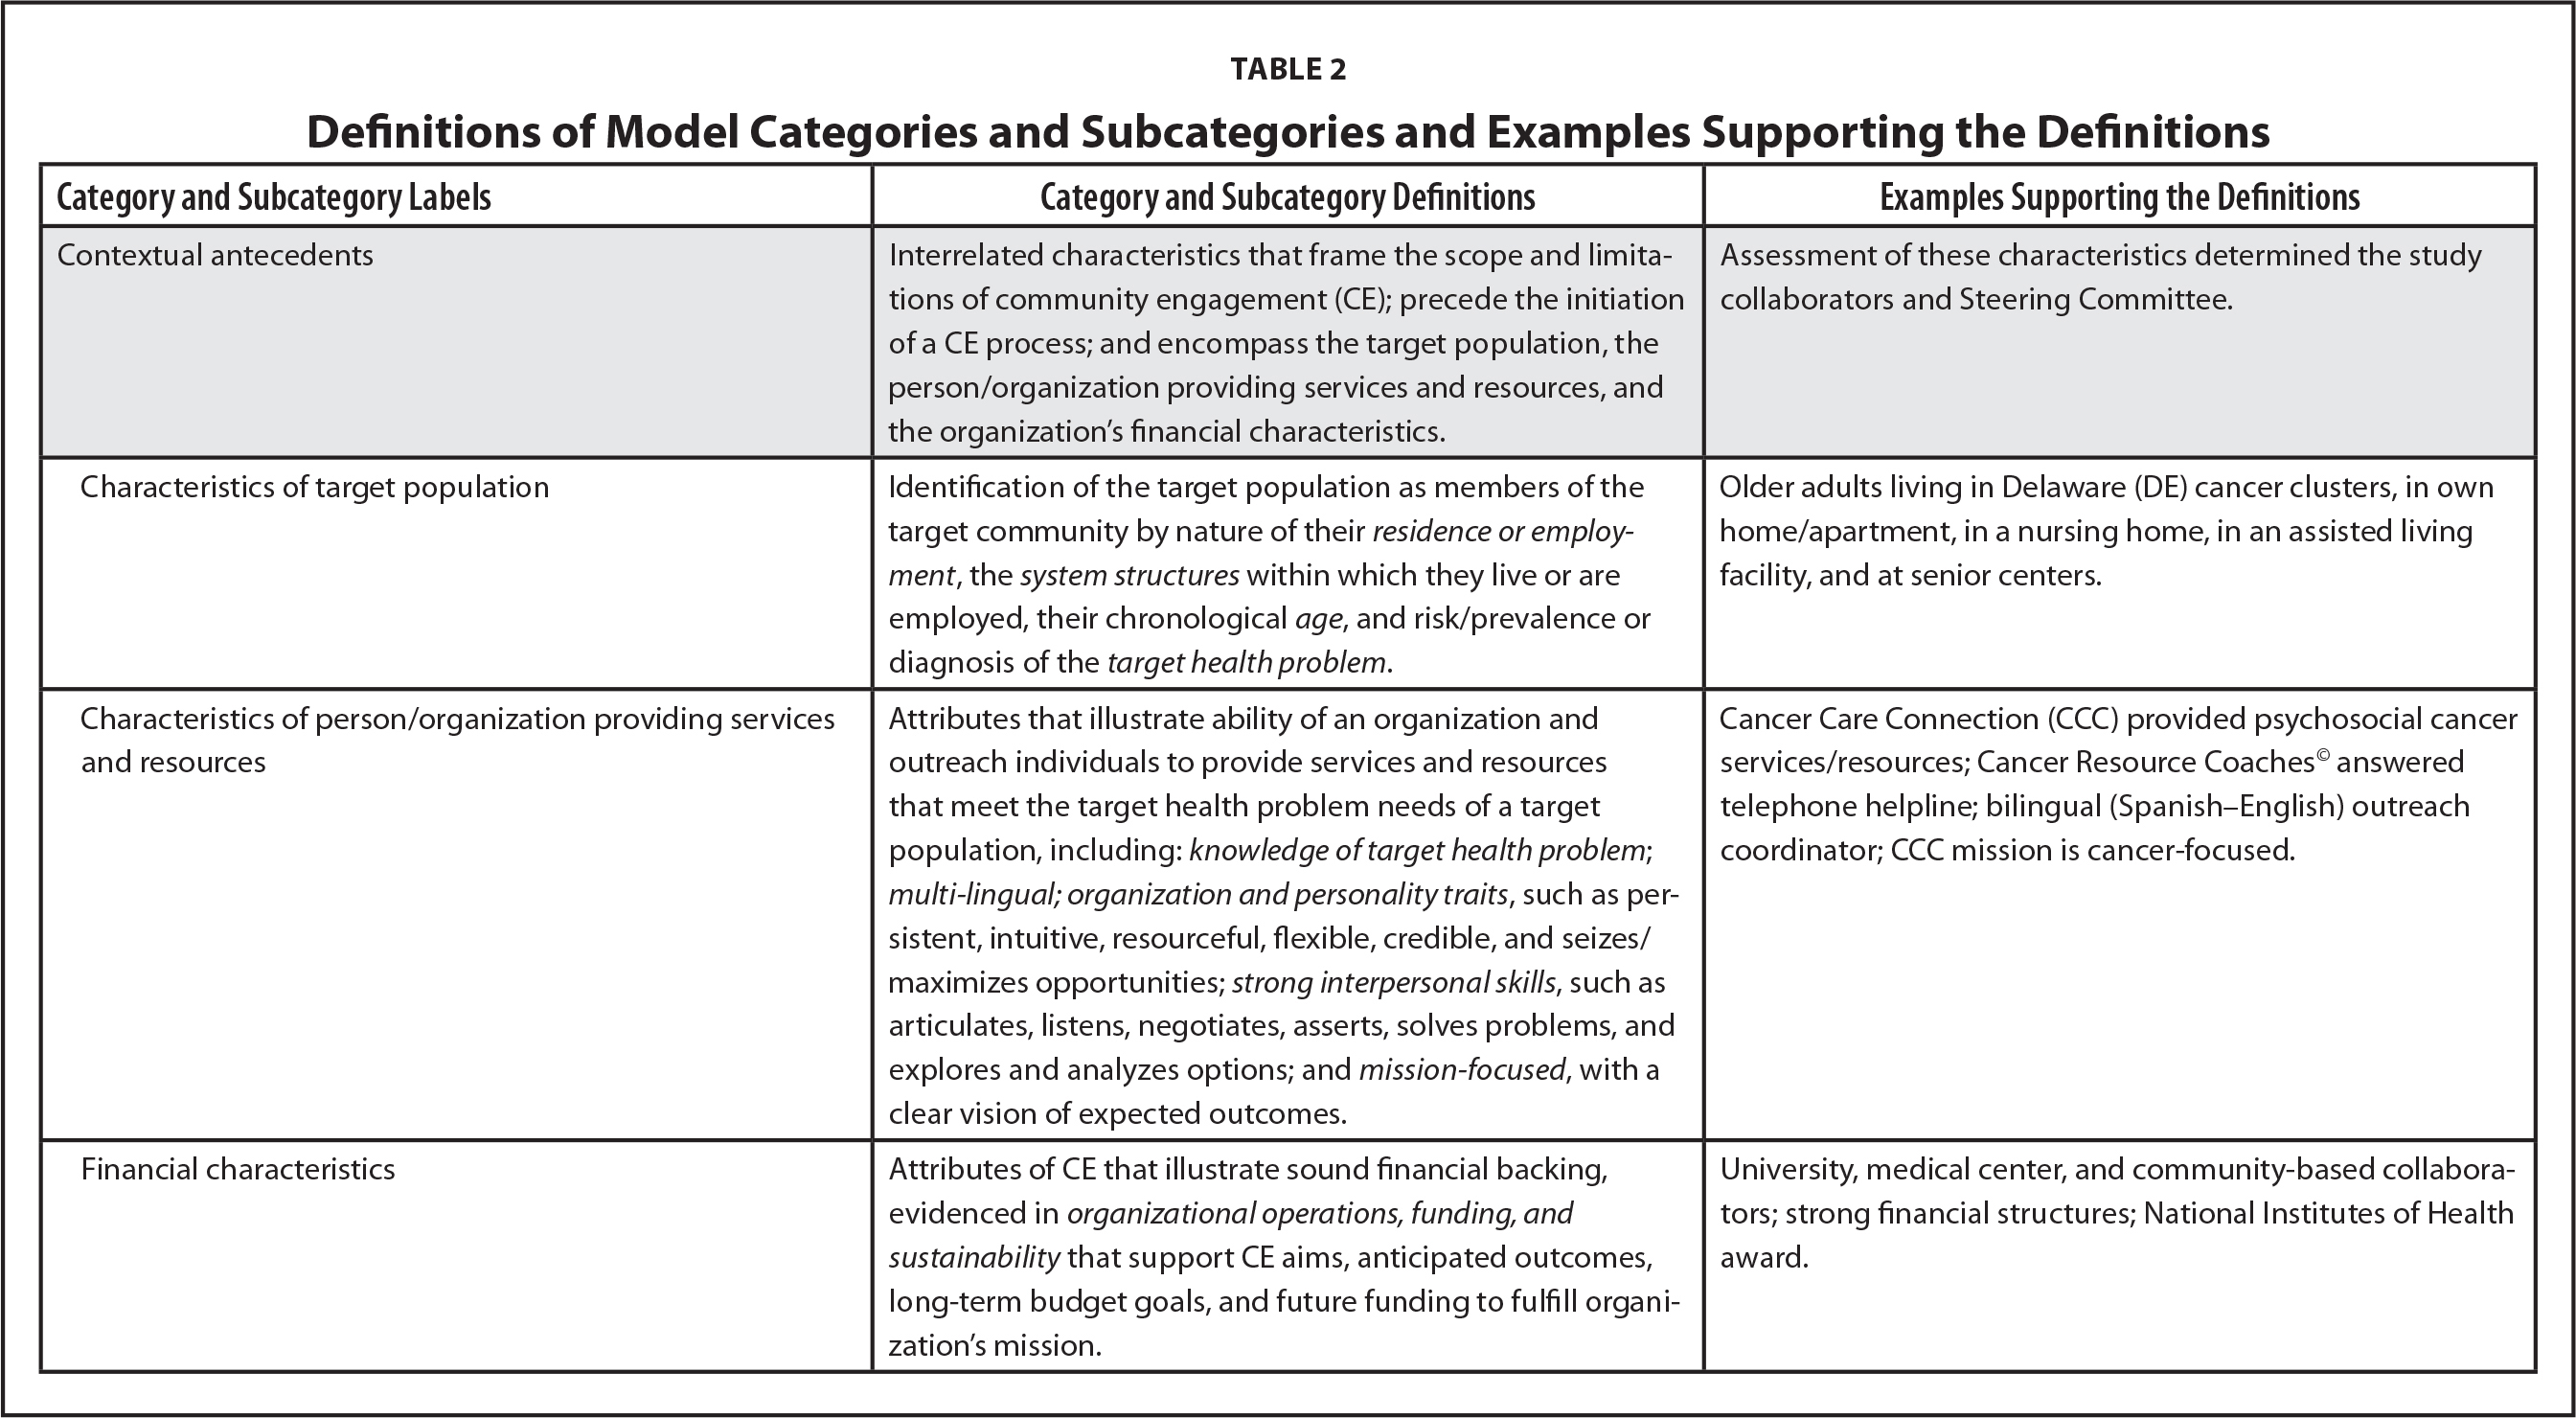 Definitions of Model Categories and Subcategories and Examples Supporting the Definitions